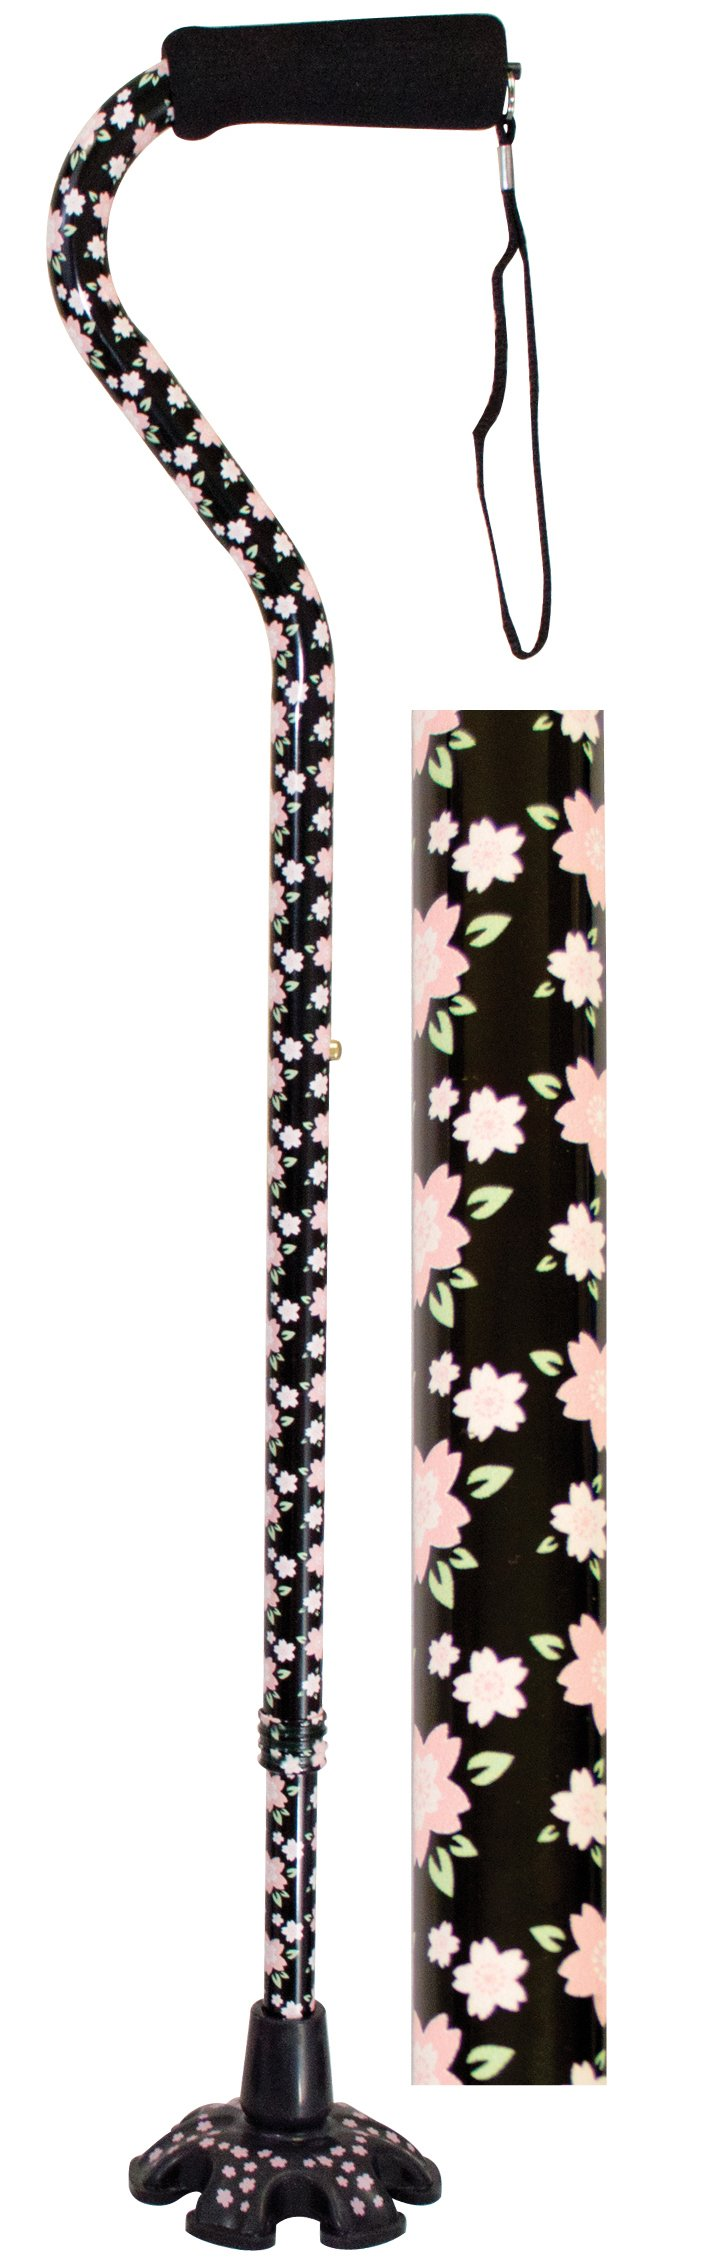 Essential Medical Supply Couture Offset Fashion Cane with Matching Standing Super Big Foot Tip, Pink Floral Style